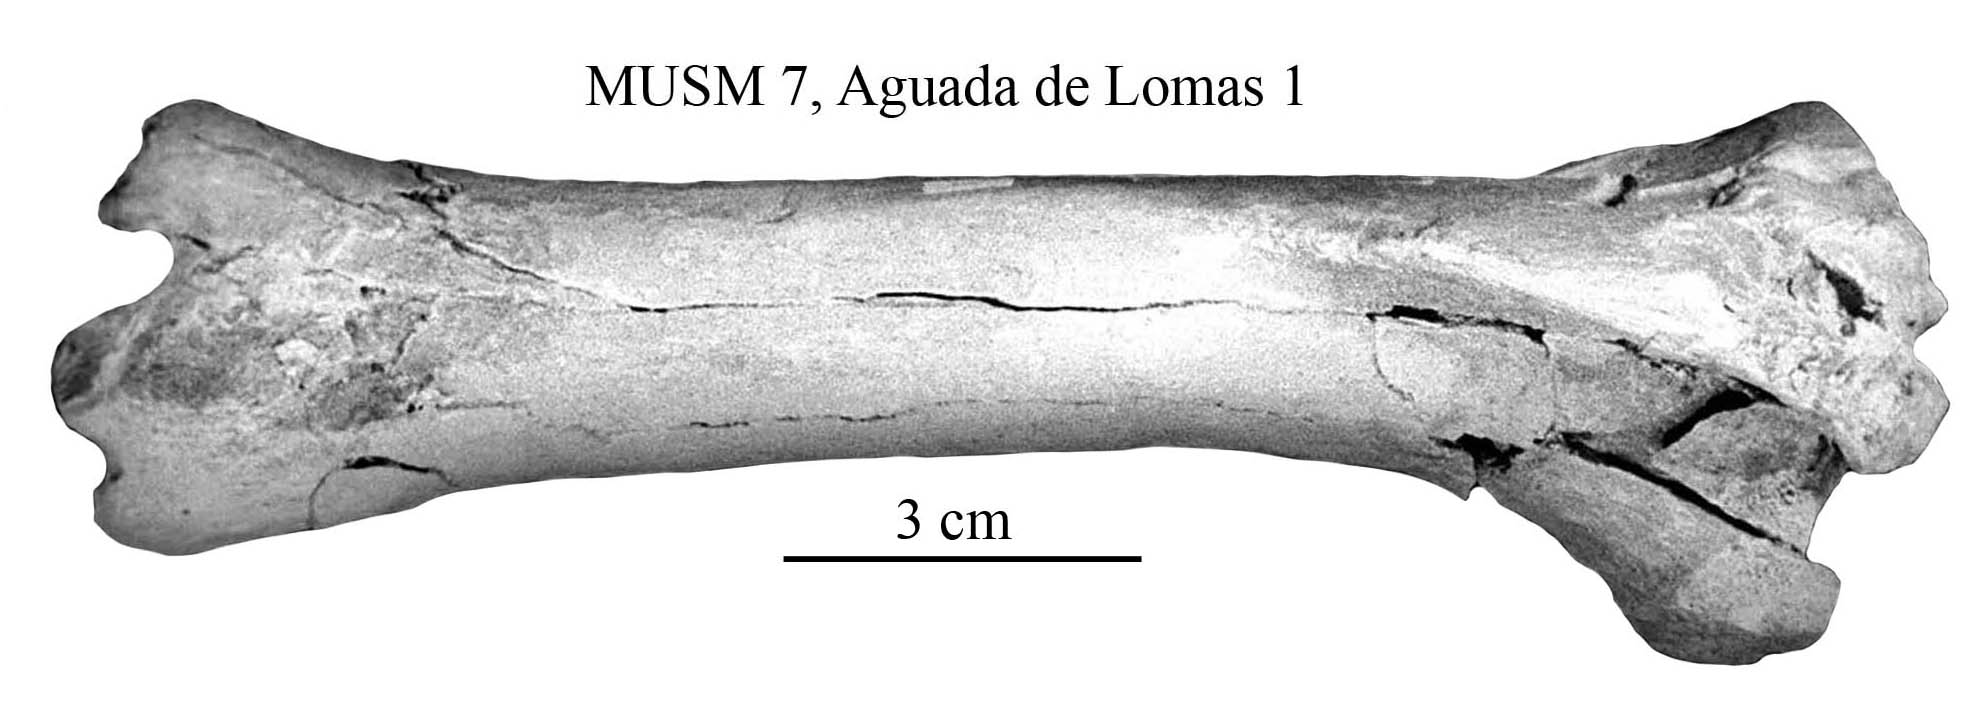 Equus Amerhipus Insulatus From Peru MUSM 7 Cranium And